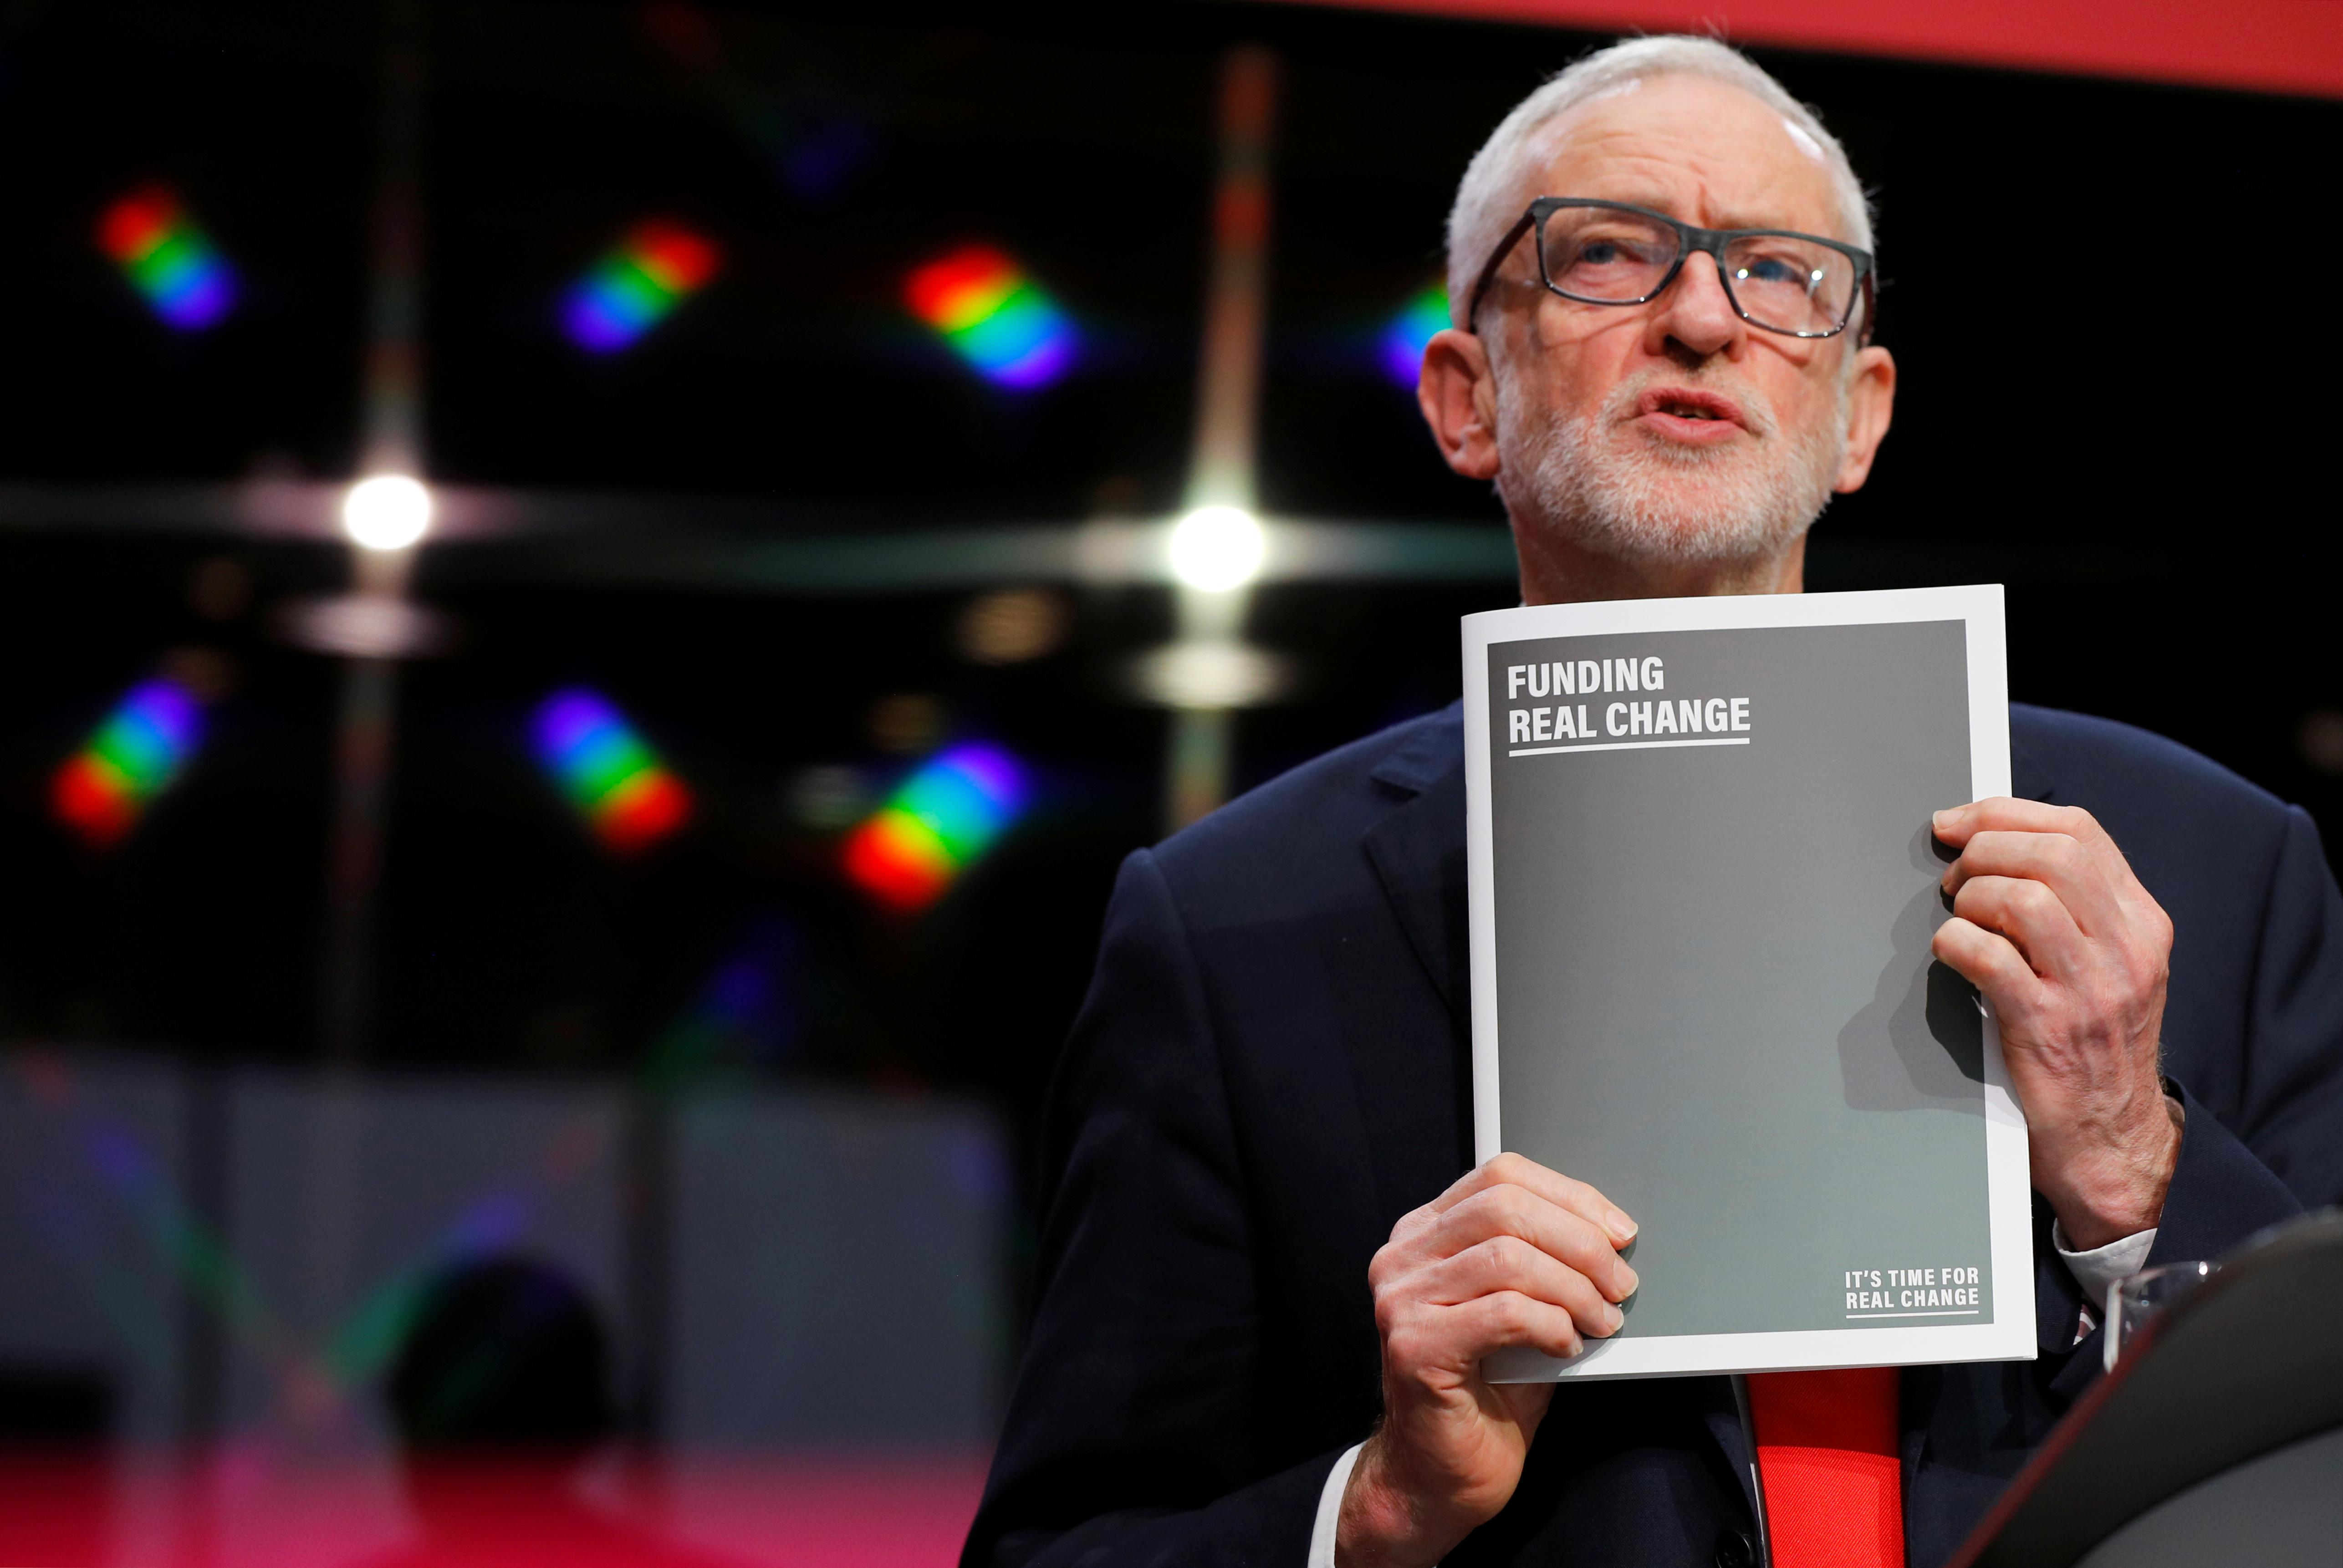 Corbyn: We are not fighting election to go into coalition